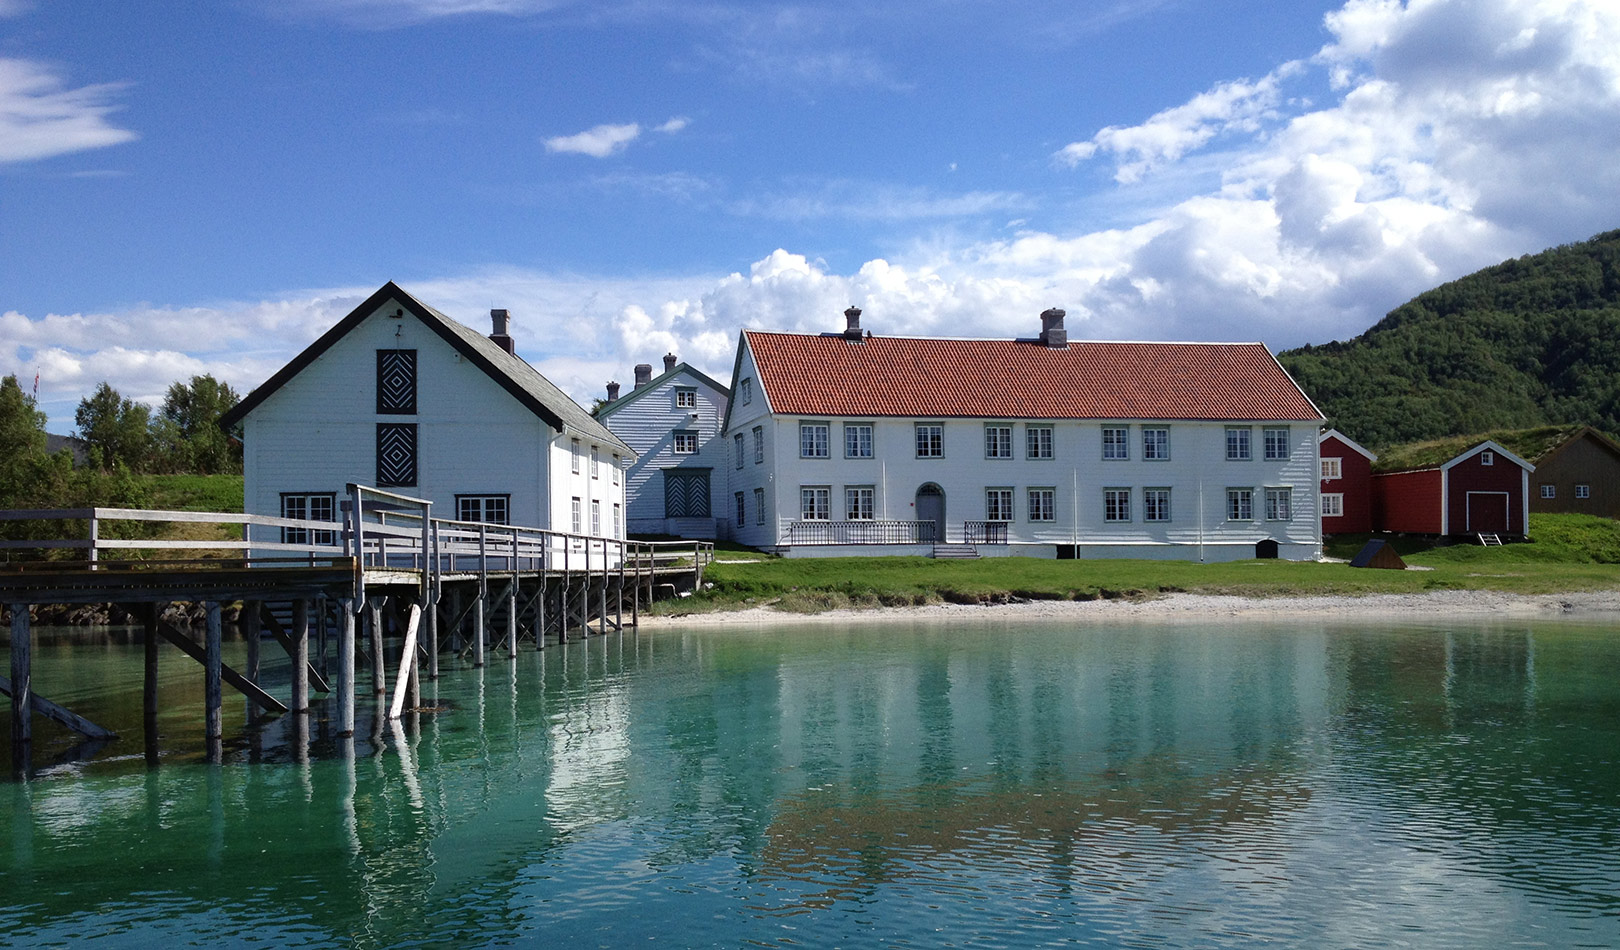 The old trading post at Kjerringøy.